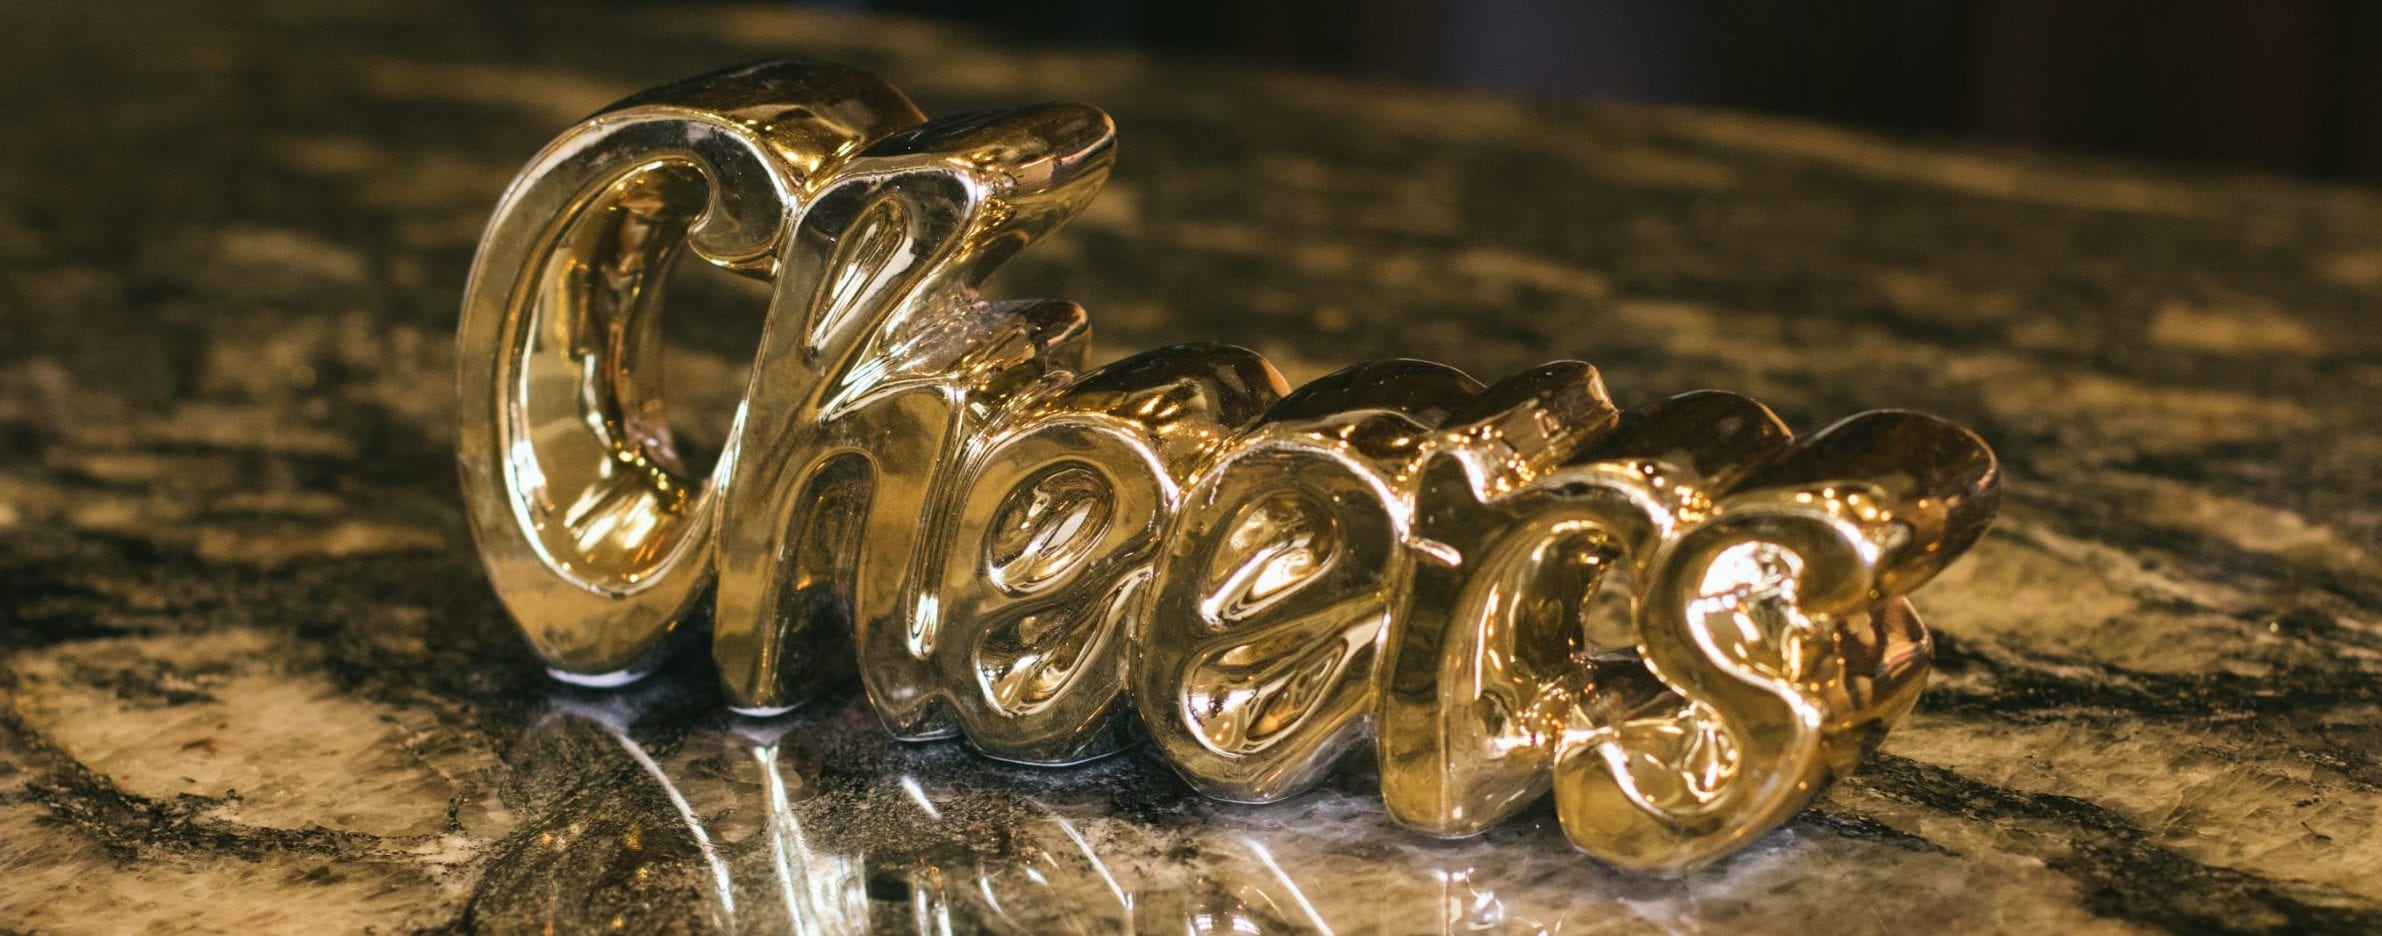 The word 'cheers' in a gold balloon on a wooden surface; highlighting the Cheers Bed and Breakfast, and reinvention